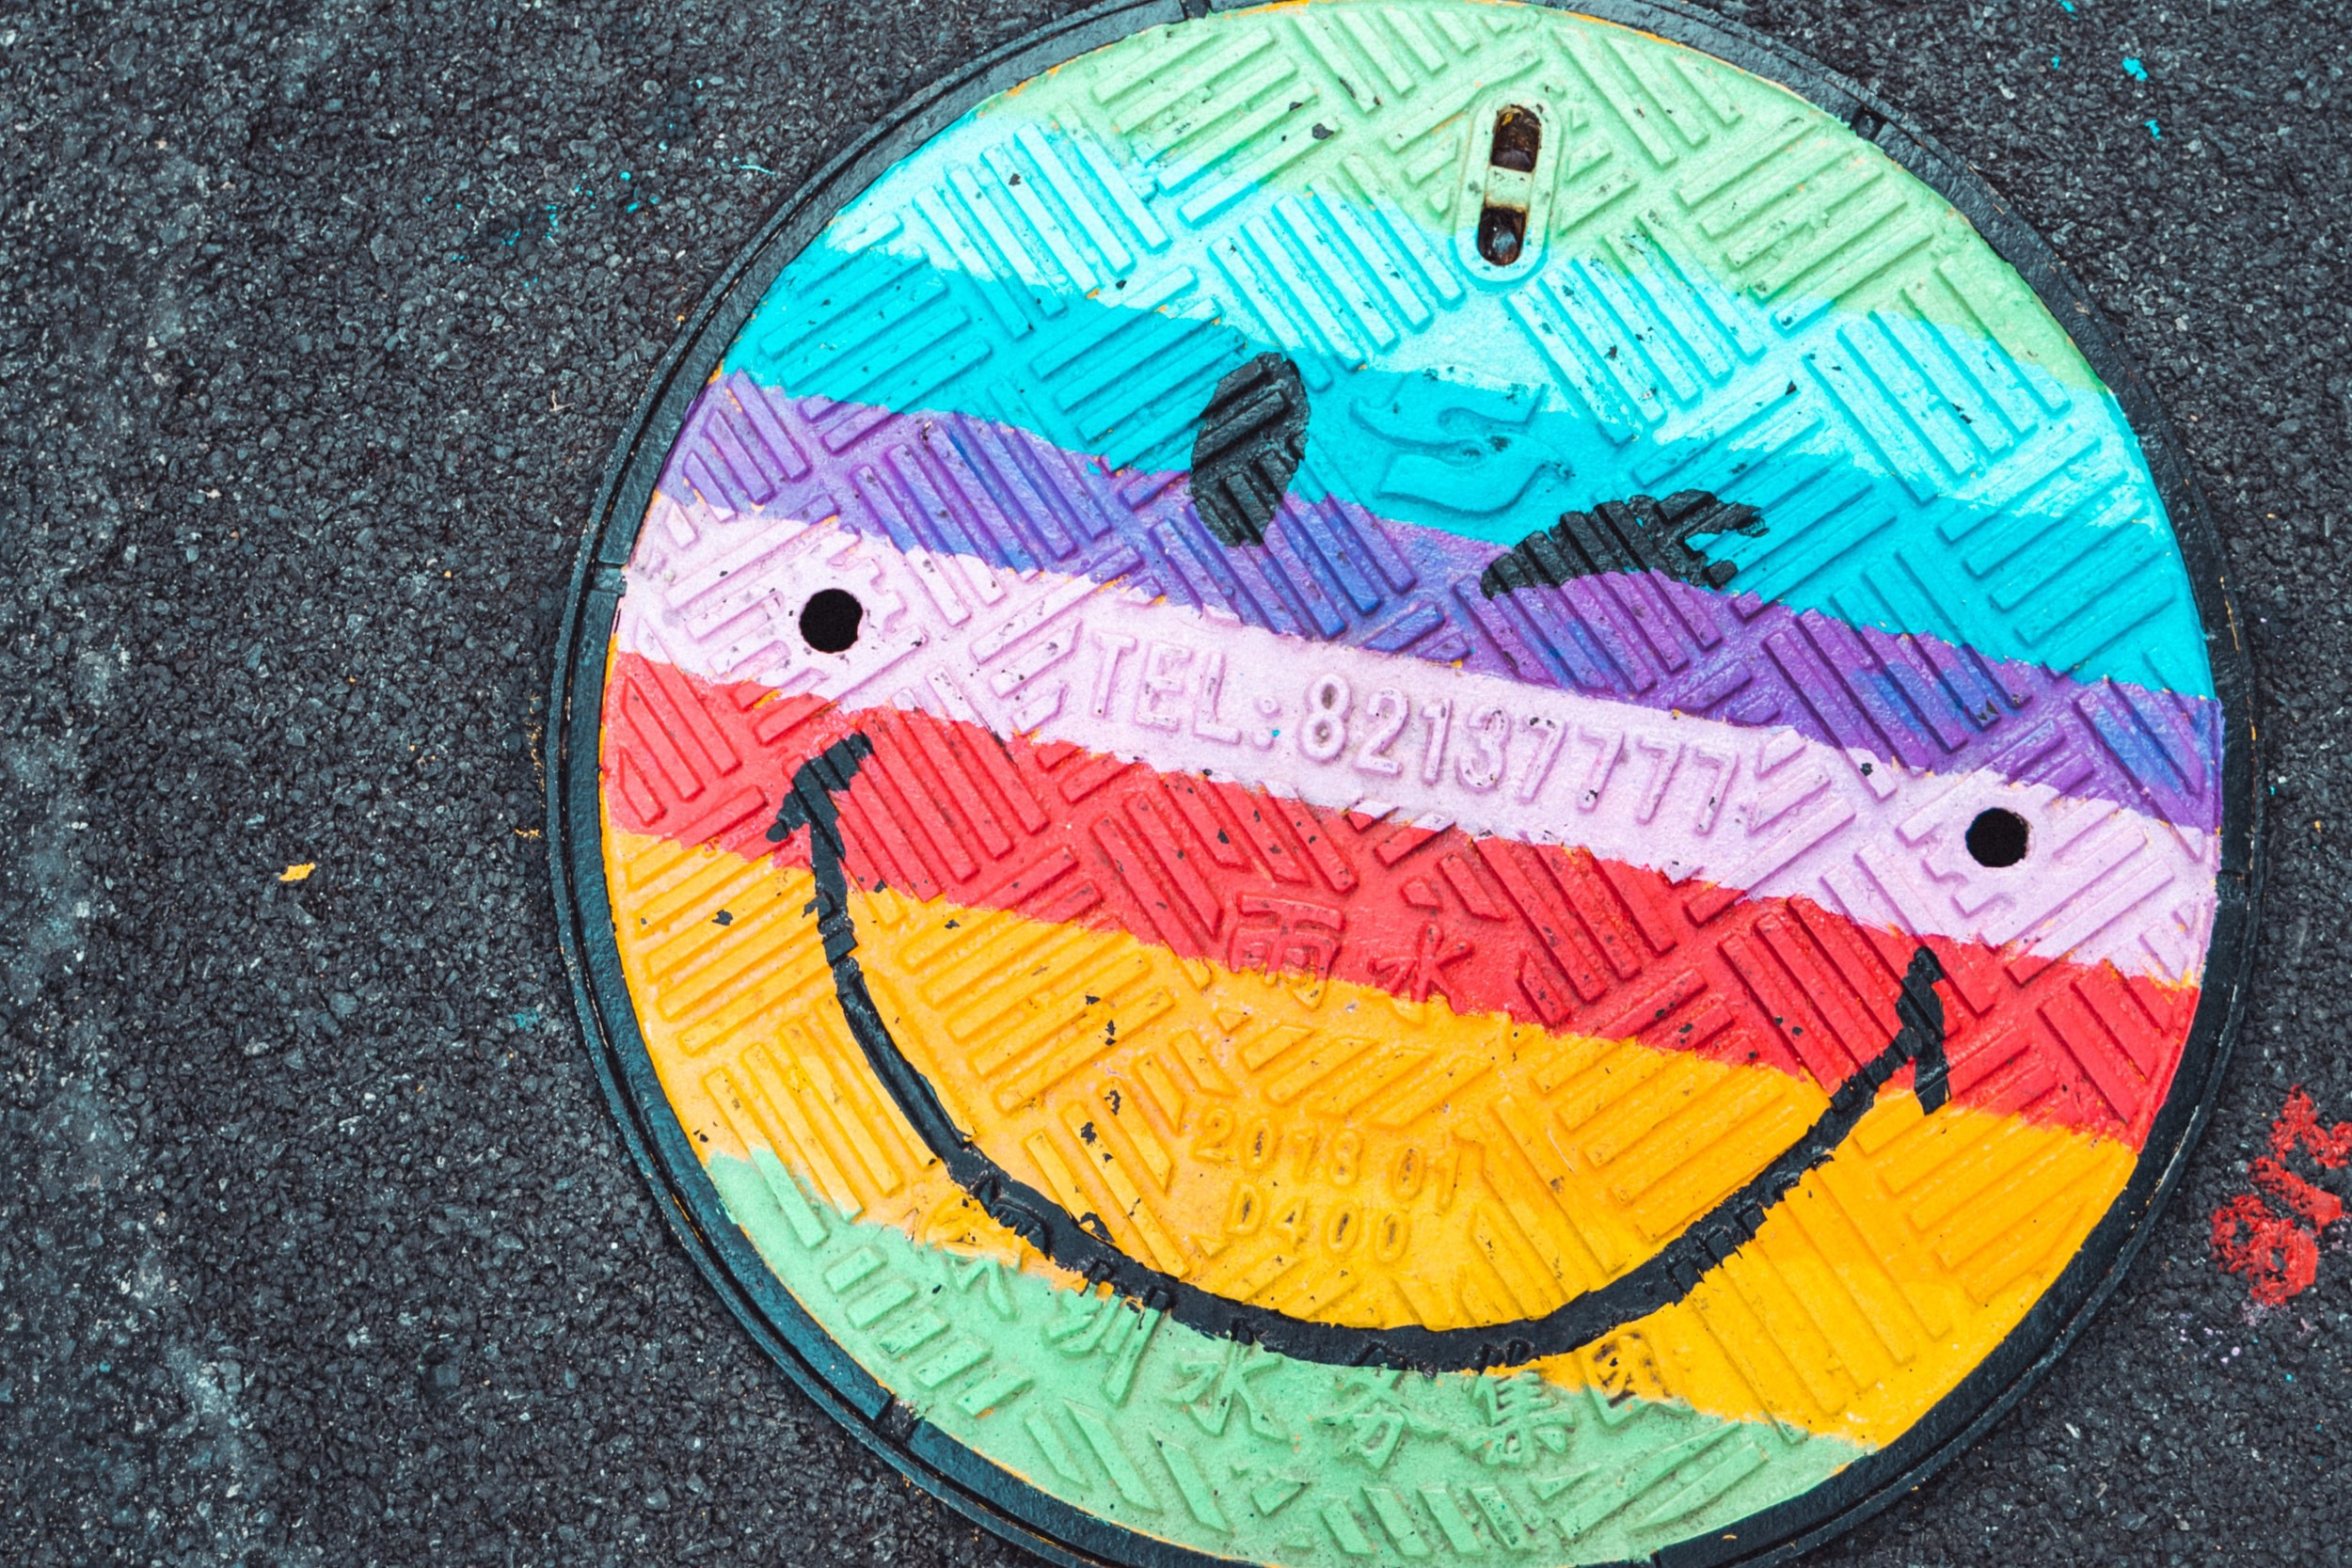 Smily face on a manhole cover, but painted in a pastel rainbow.